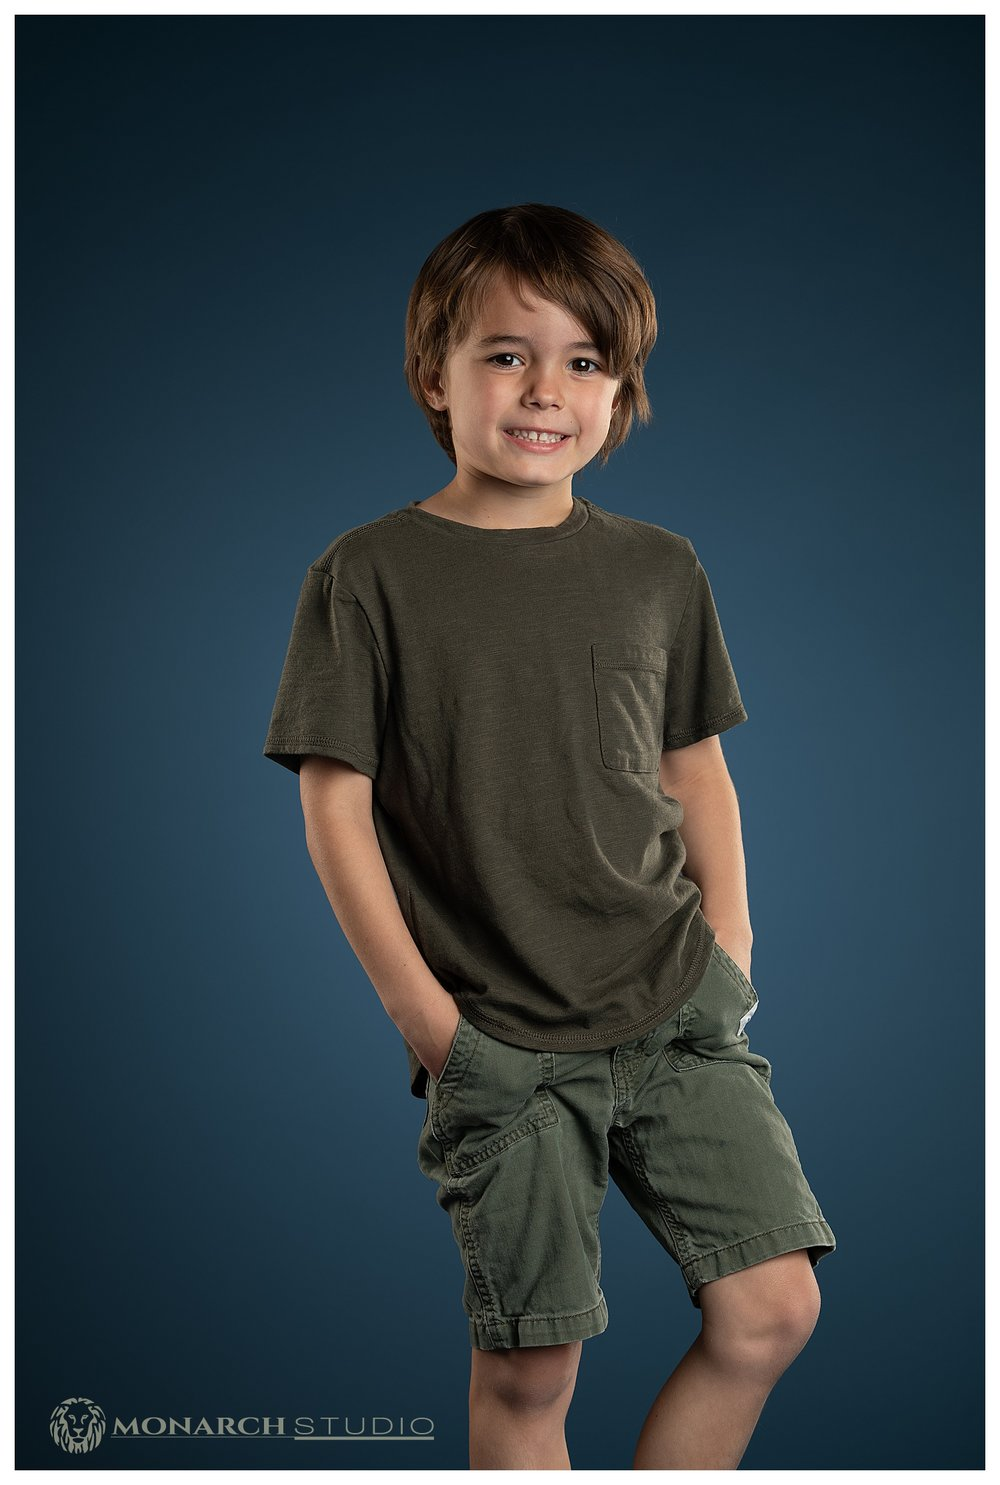 North Florida Kids Photography Studio - 004.JPG